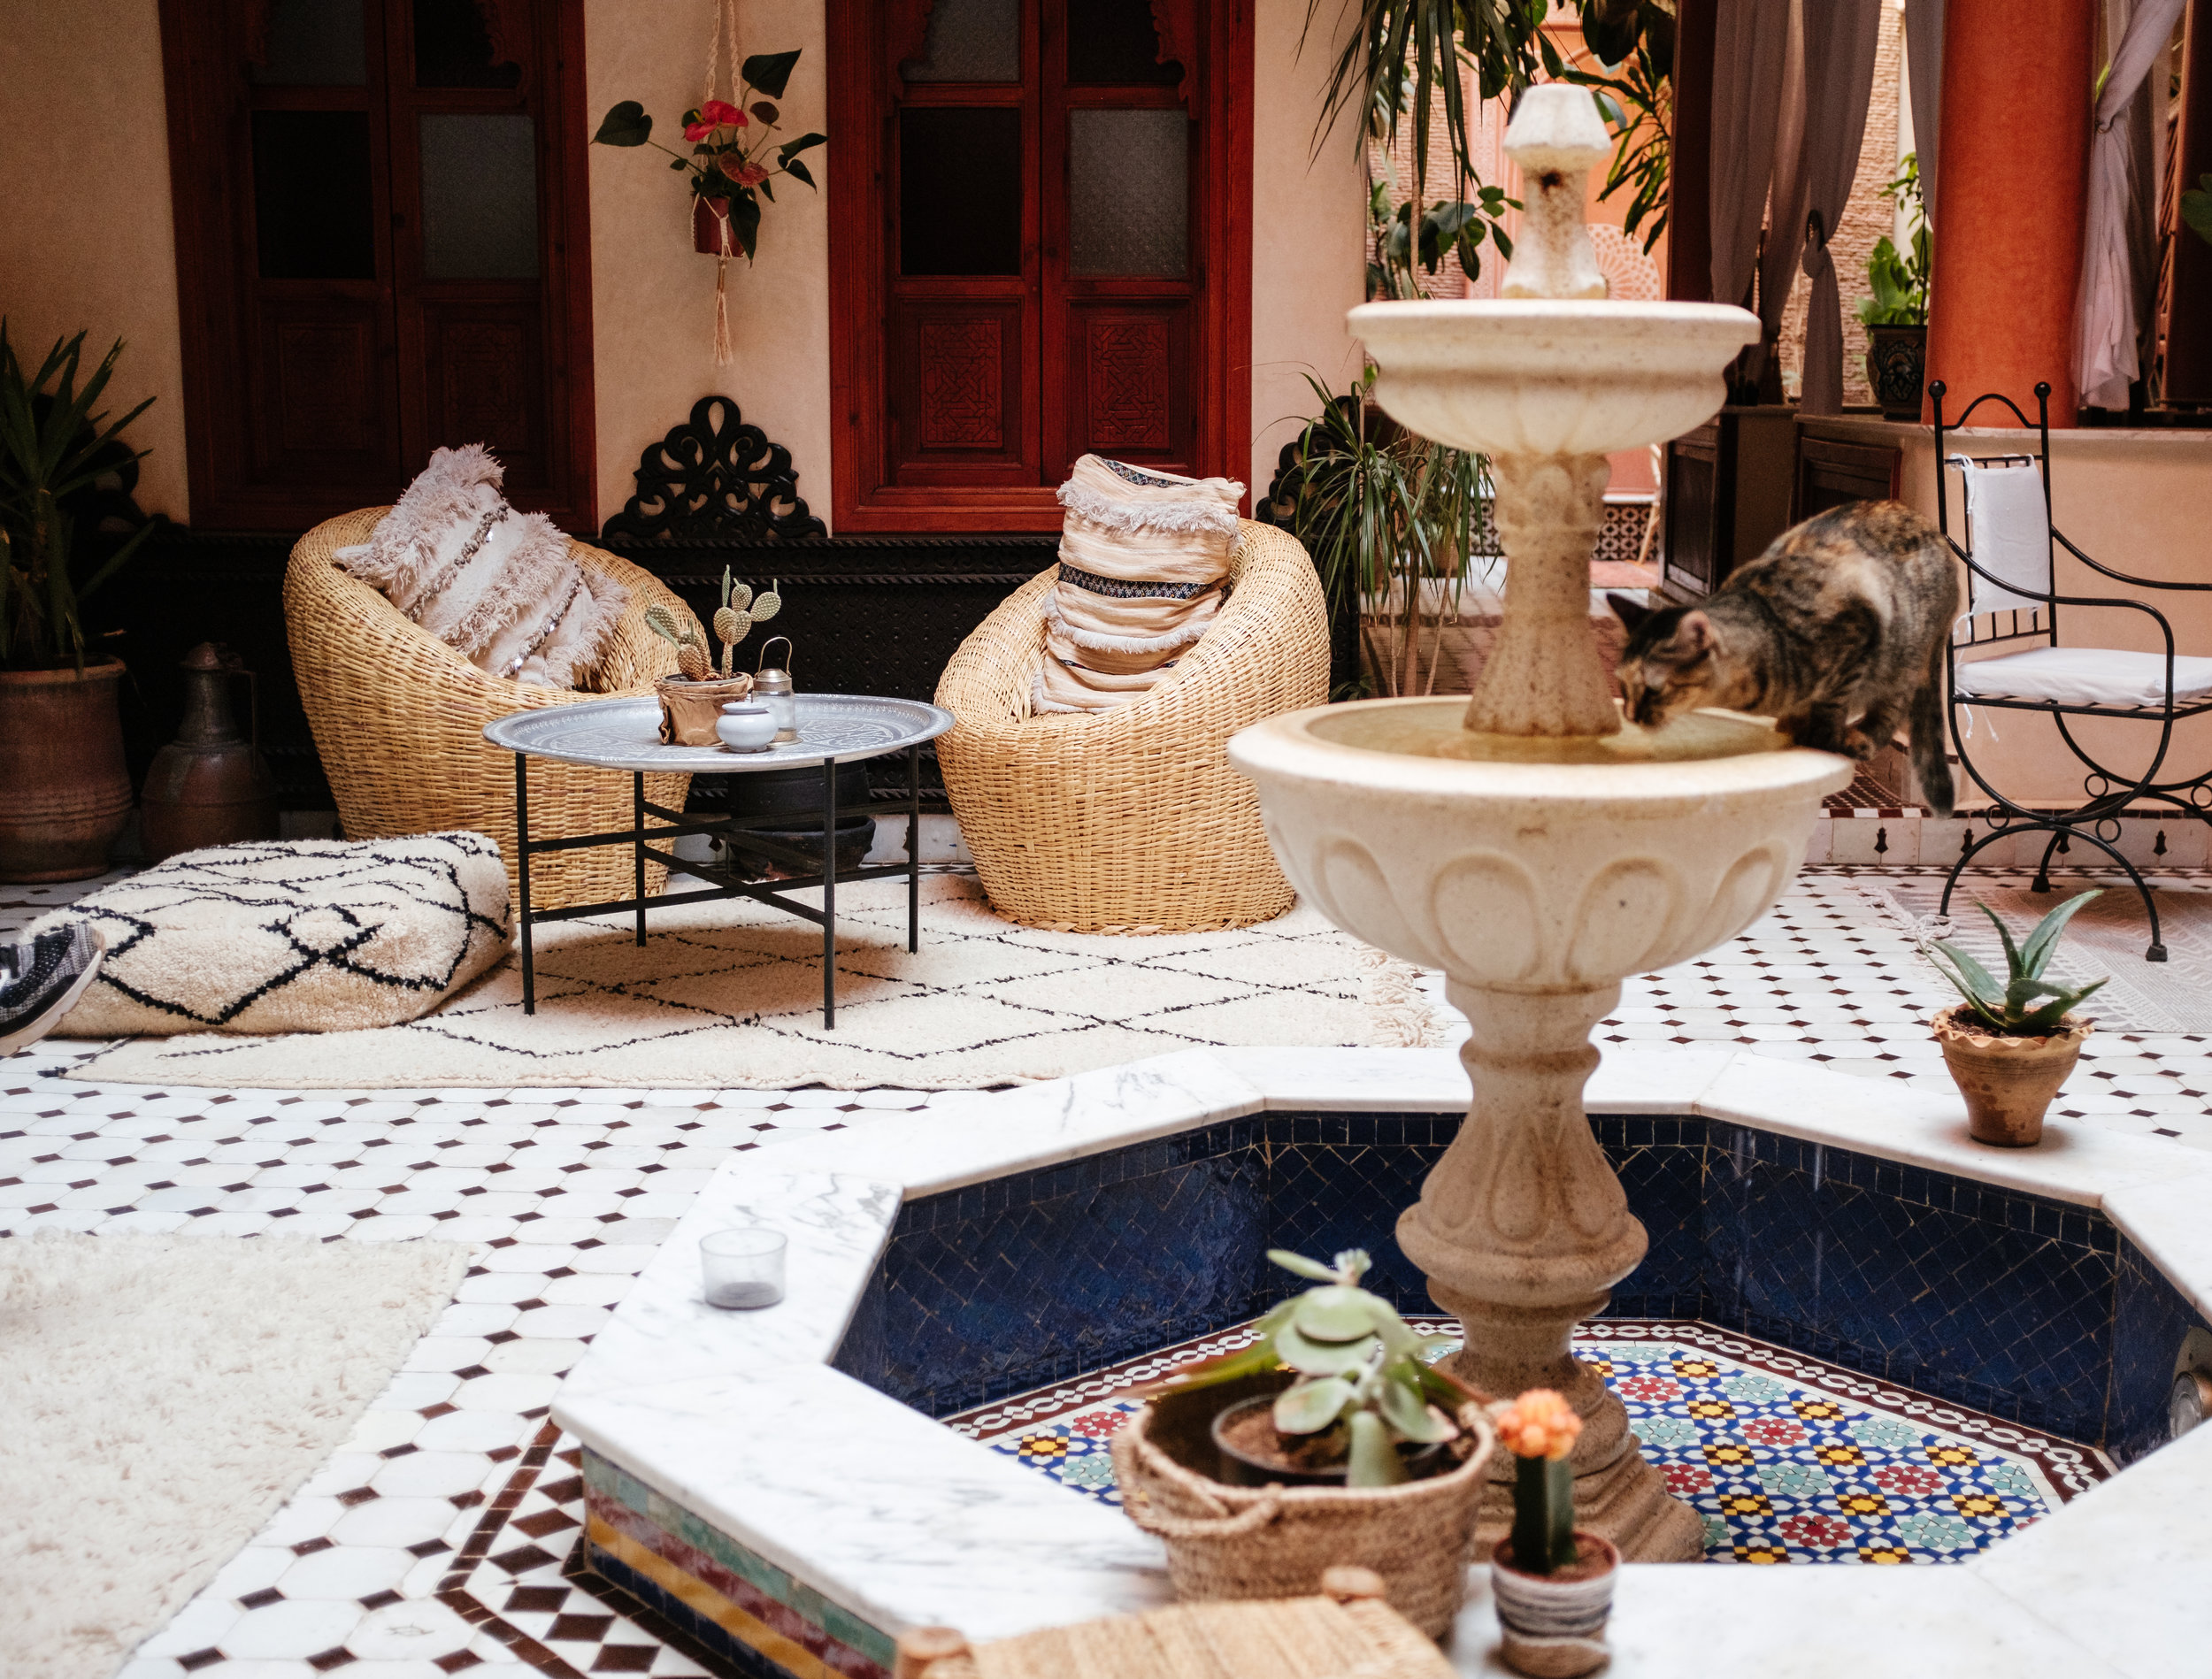 Lounging at El Riad